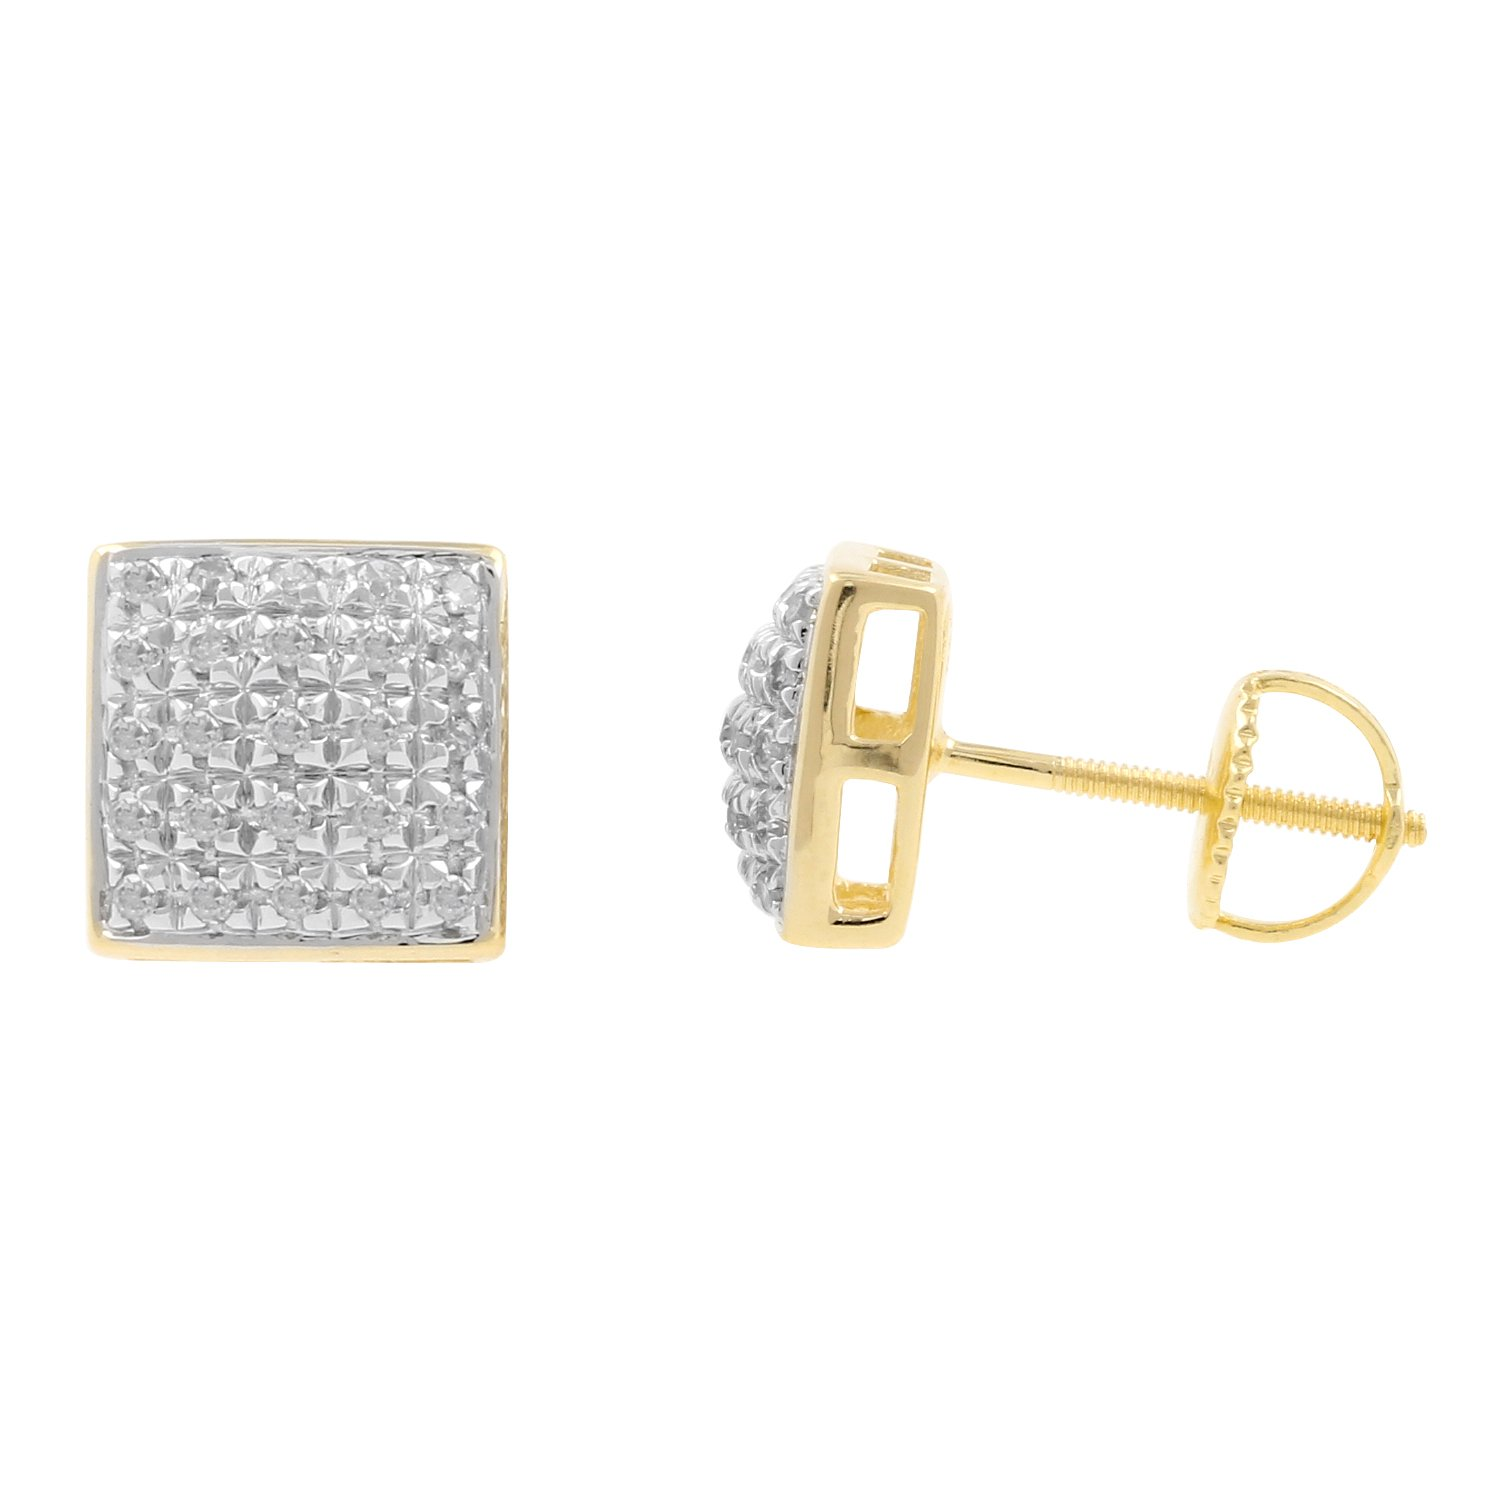 0.20ct Real Diamond Square Dome Shape Mens Stud Earrings in 10kt Yellow Gold-1/5 CTTW (G-H, I1-I2)